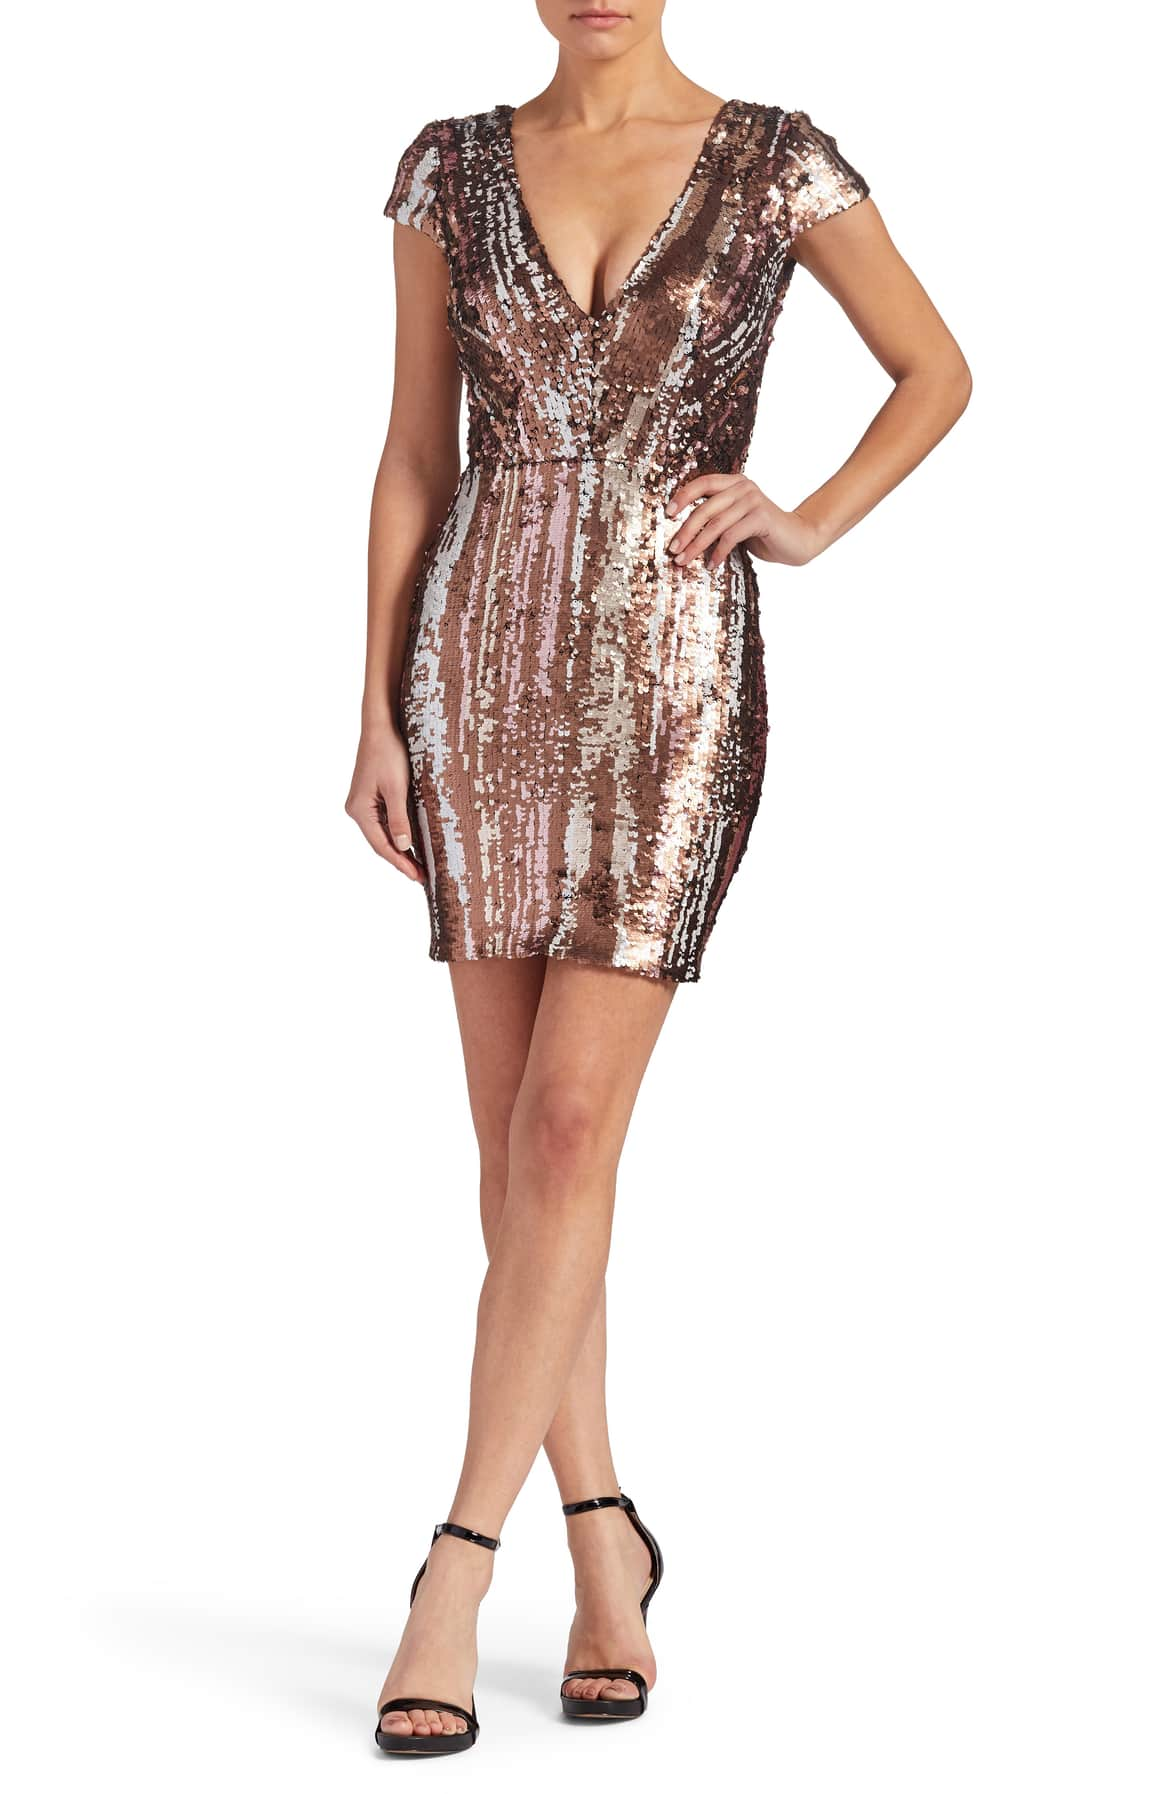 Release your inner vixen by wearing this striking and attractive sequins dress.   Be glam and be the sparkle of his eye!